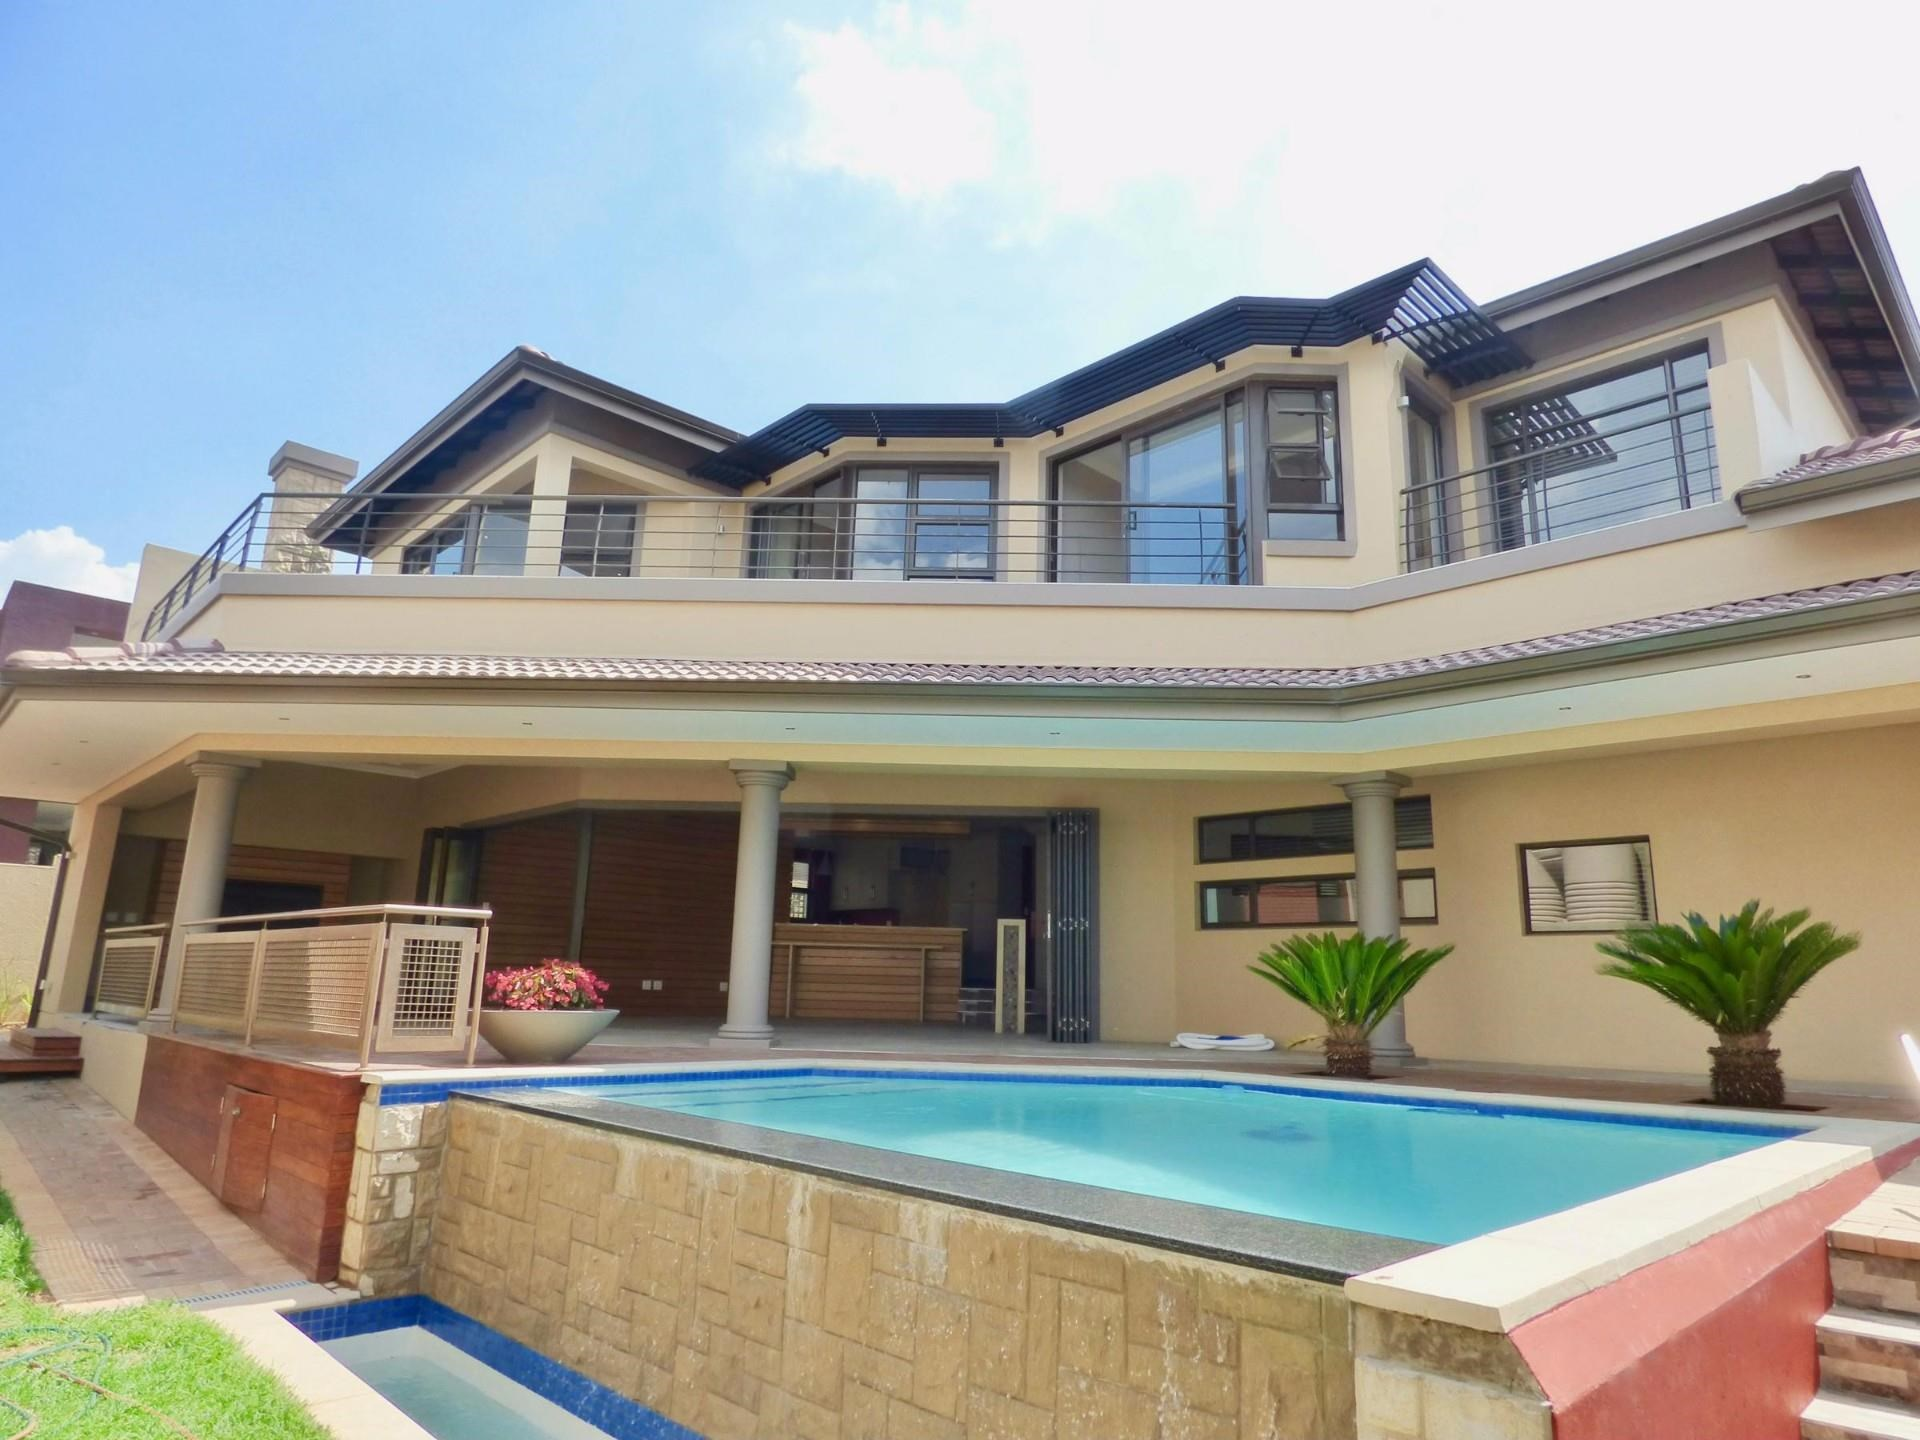 4 Bedroom House for Sale in Ebotse Golf Estate